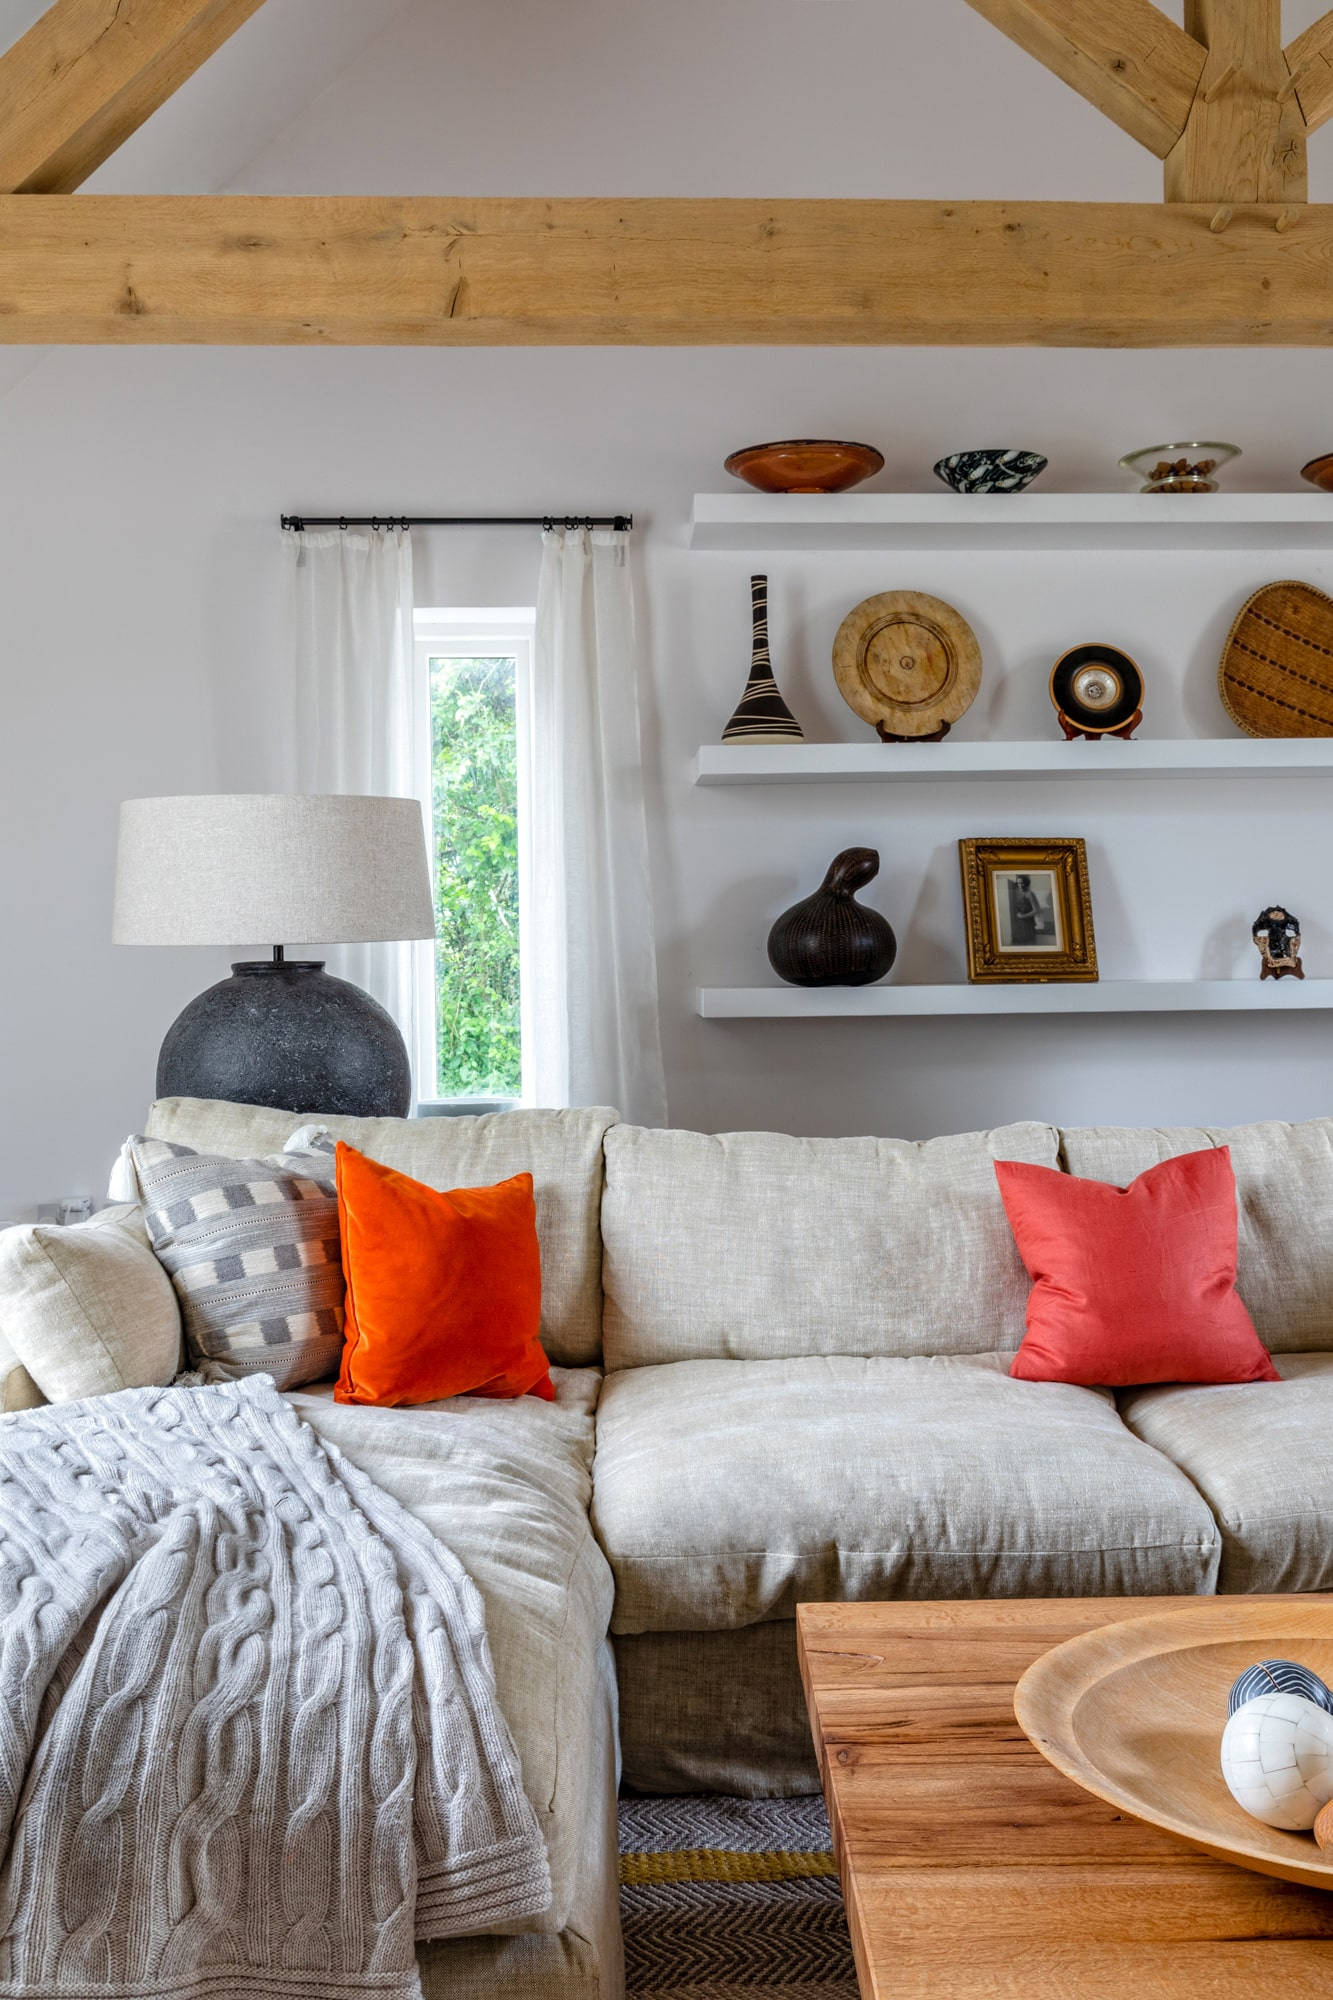 Interior photography: living room detail, a grey sofa with pillows; white shelves with cute accessories